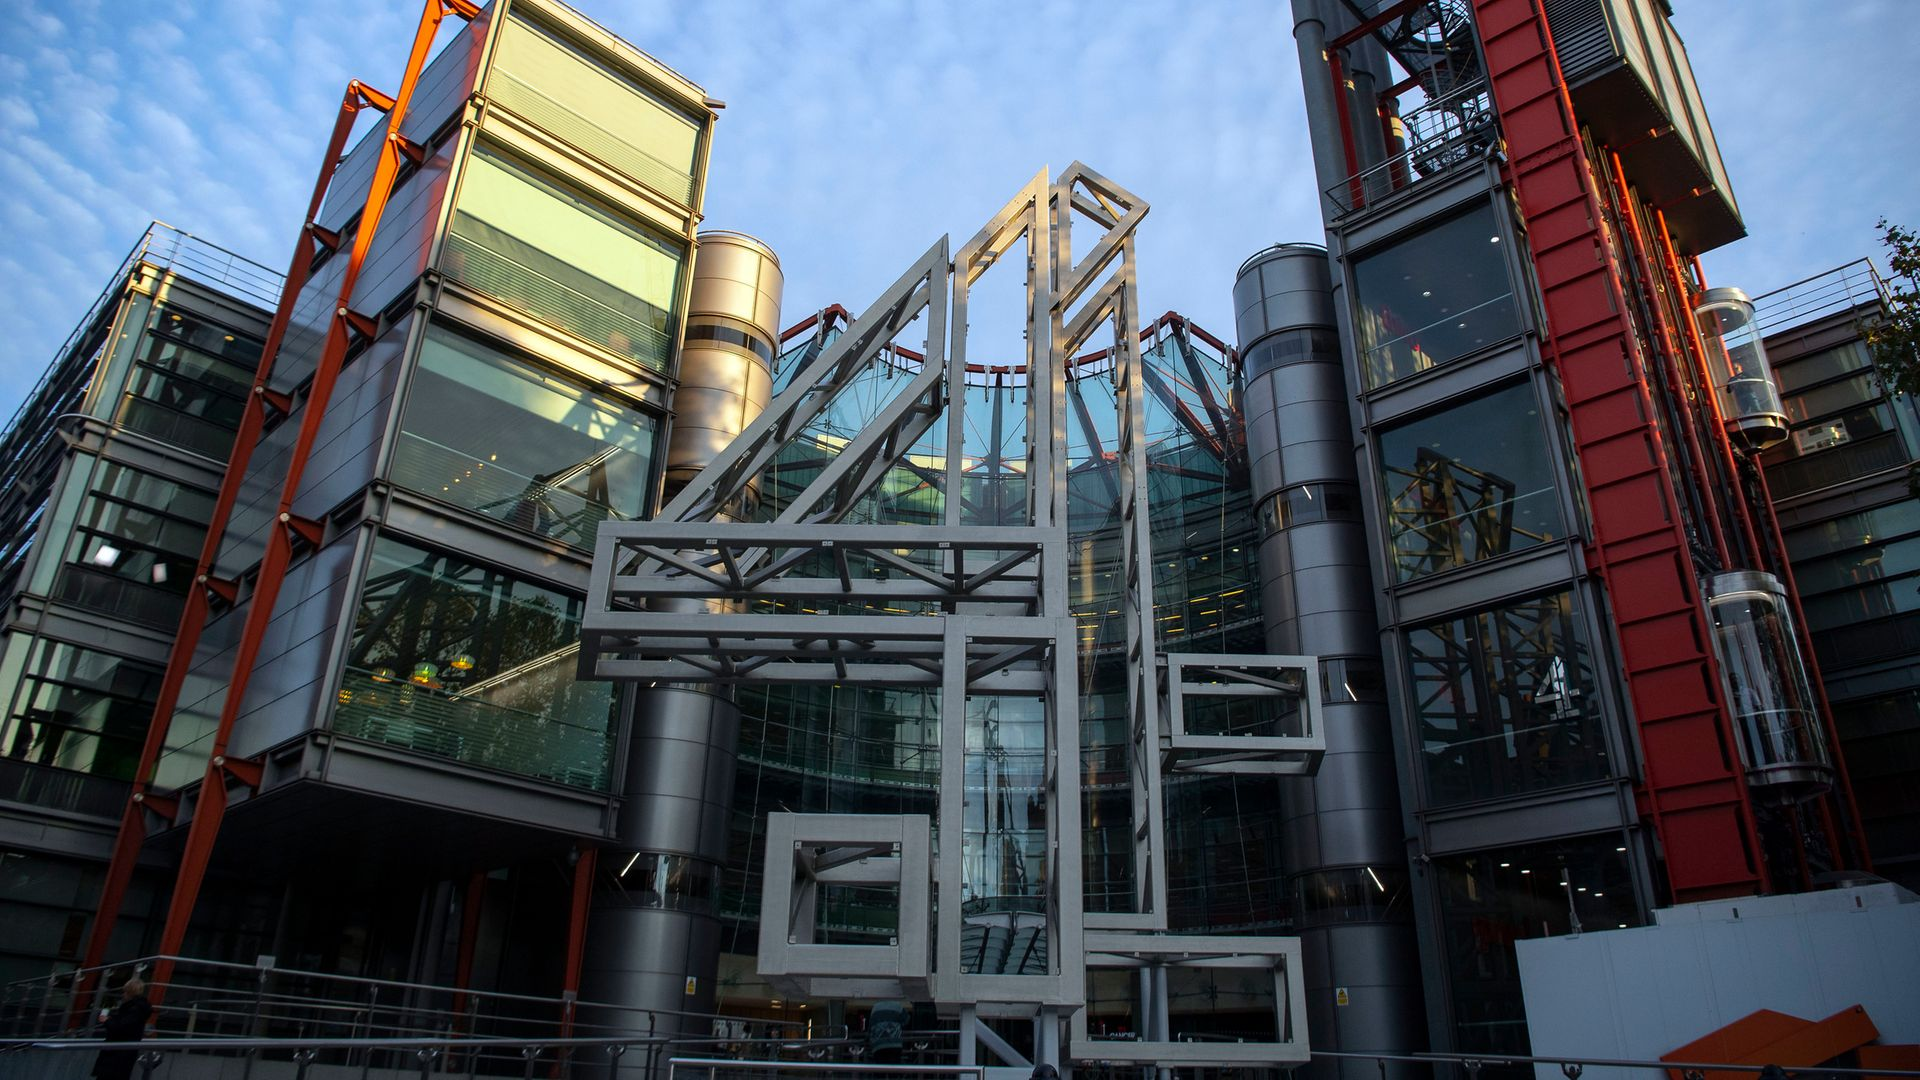 Channel 4's current headquarters on Horseferry Road, London - Credit: PA